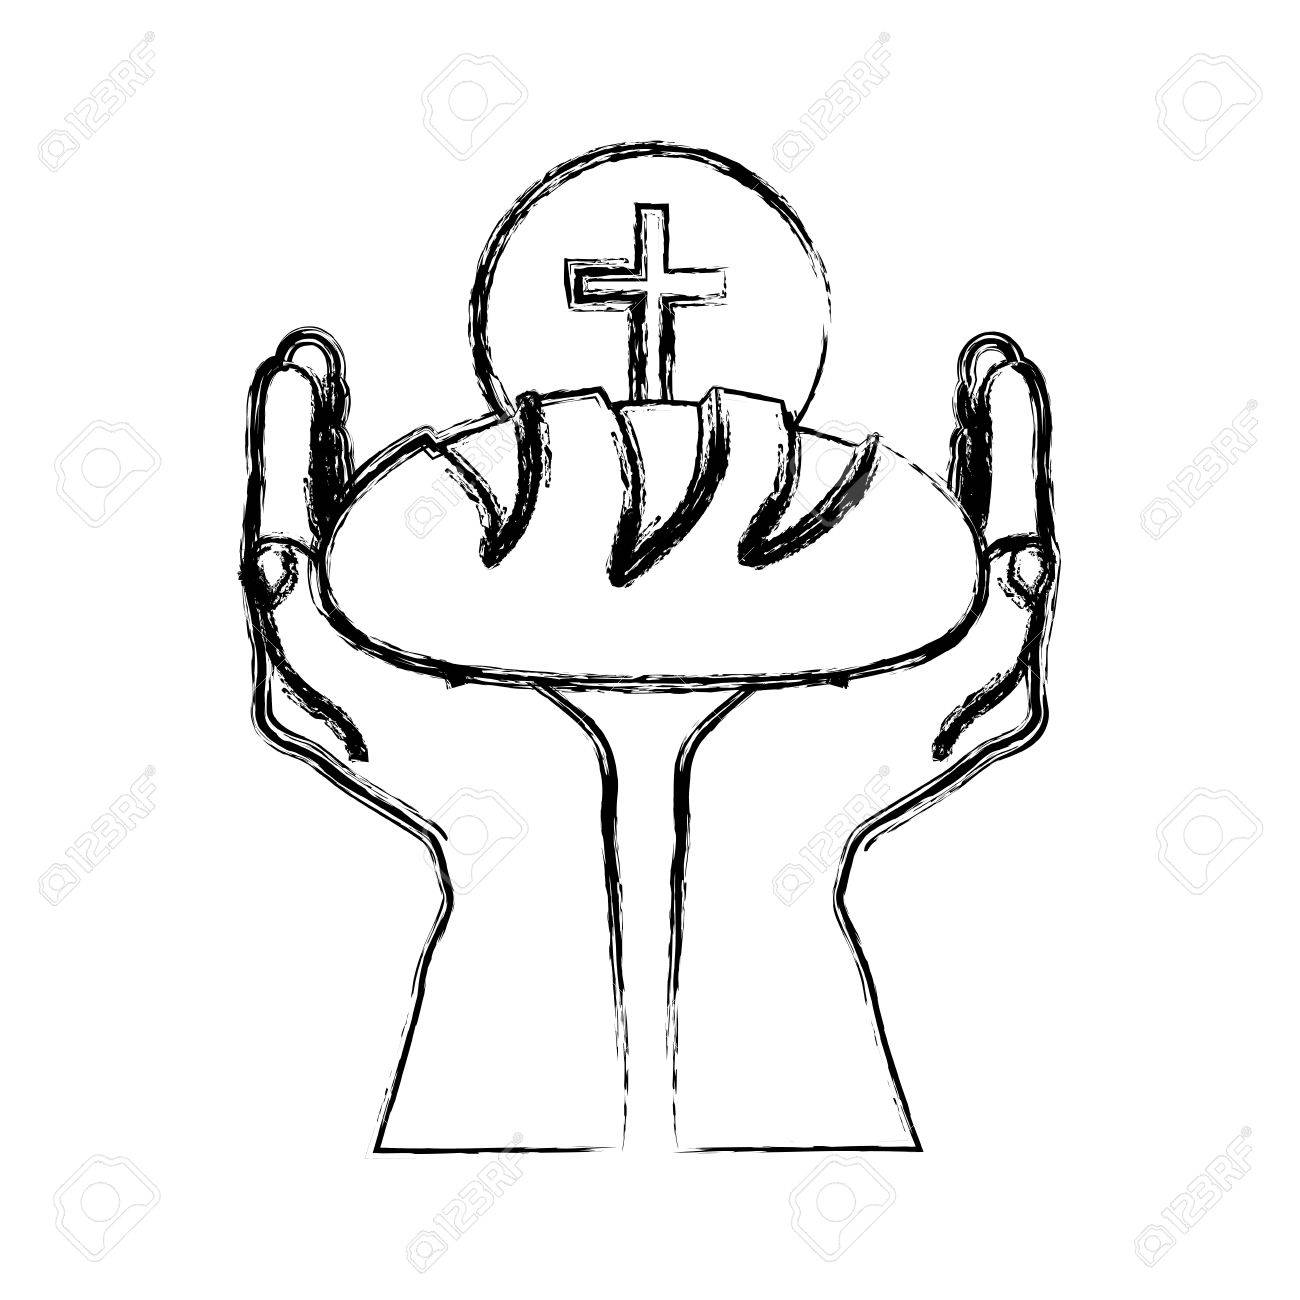 Monochrome sketch silhouette of hands holding bread with sphere with cross symbol vector illustration. - 76356873